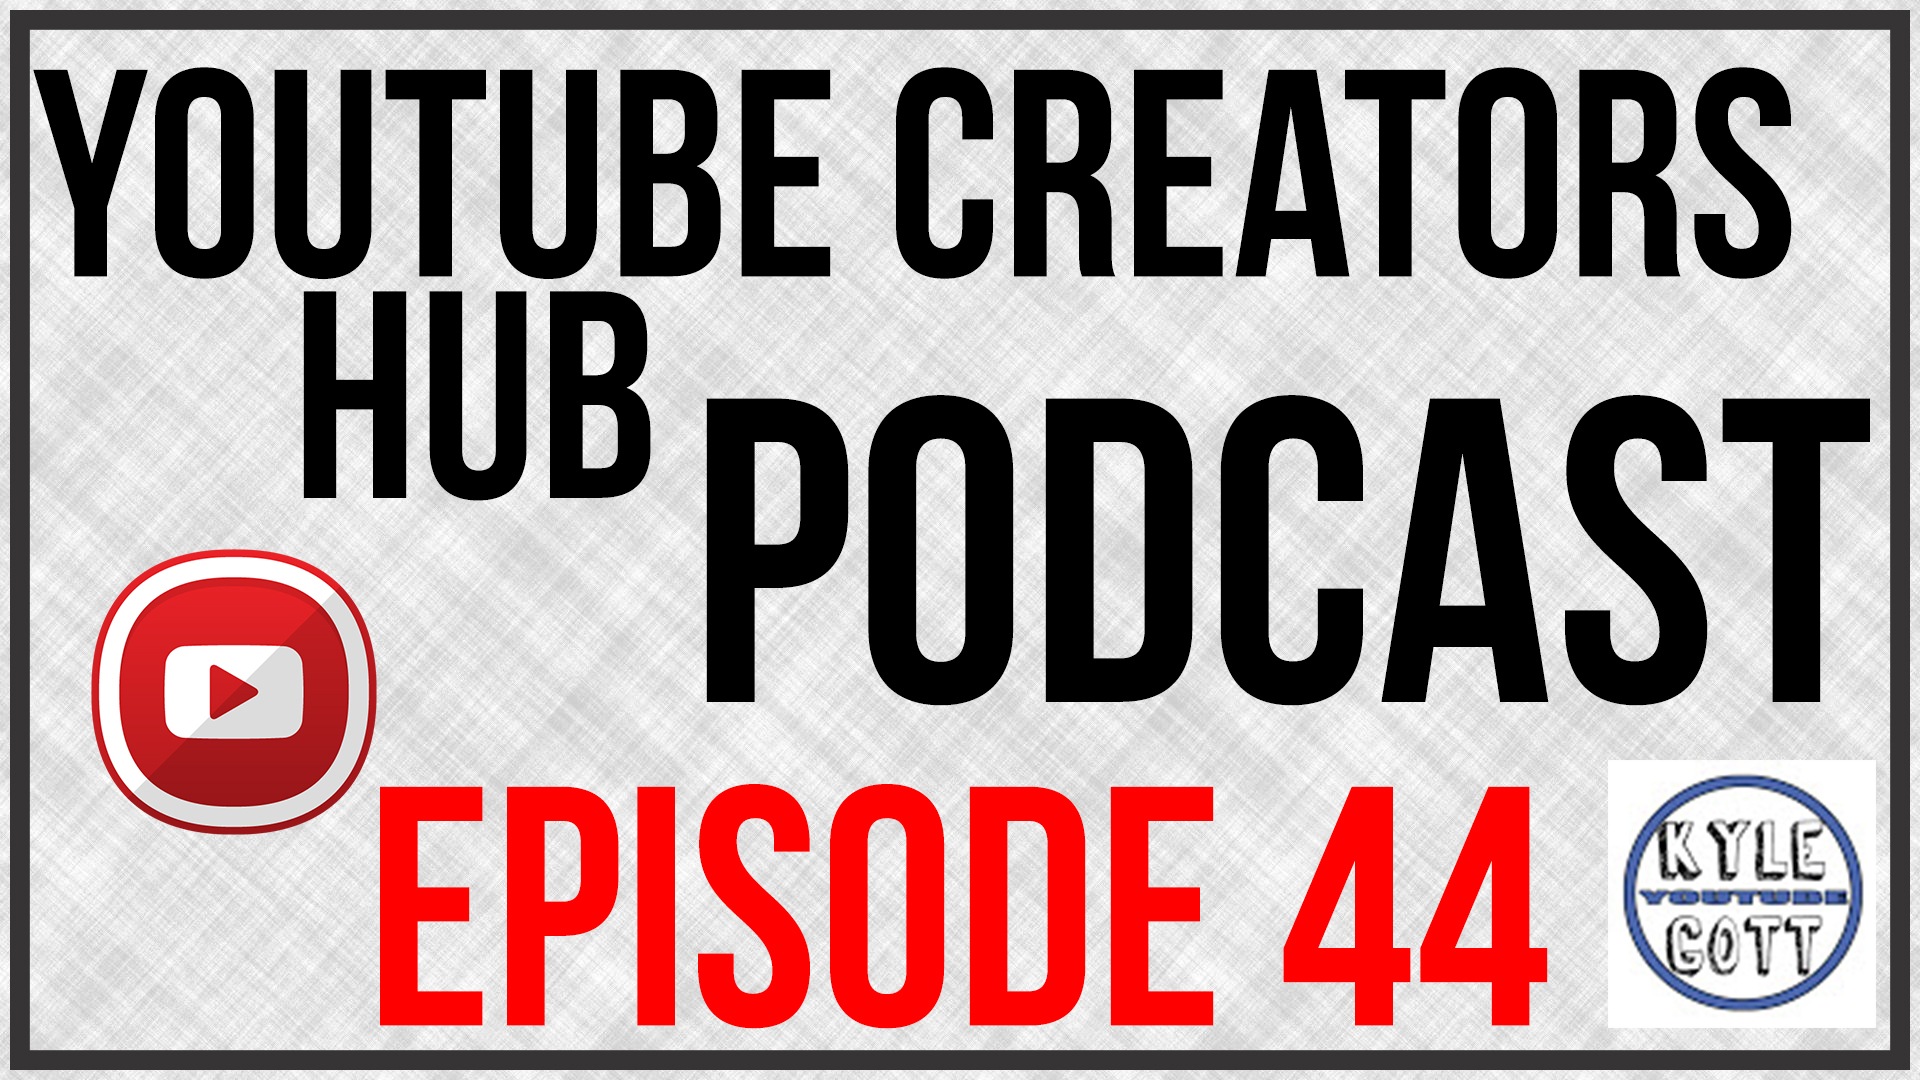 youtube creators hub podcast episode 44